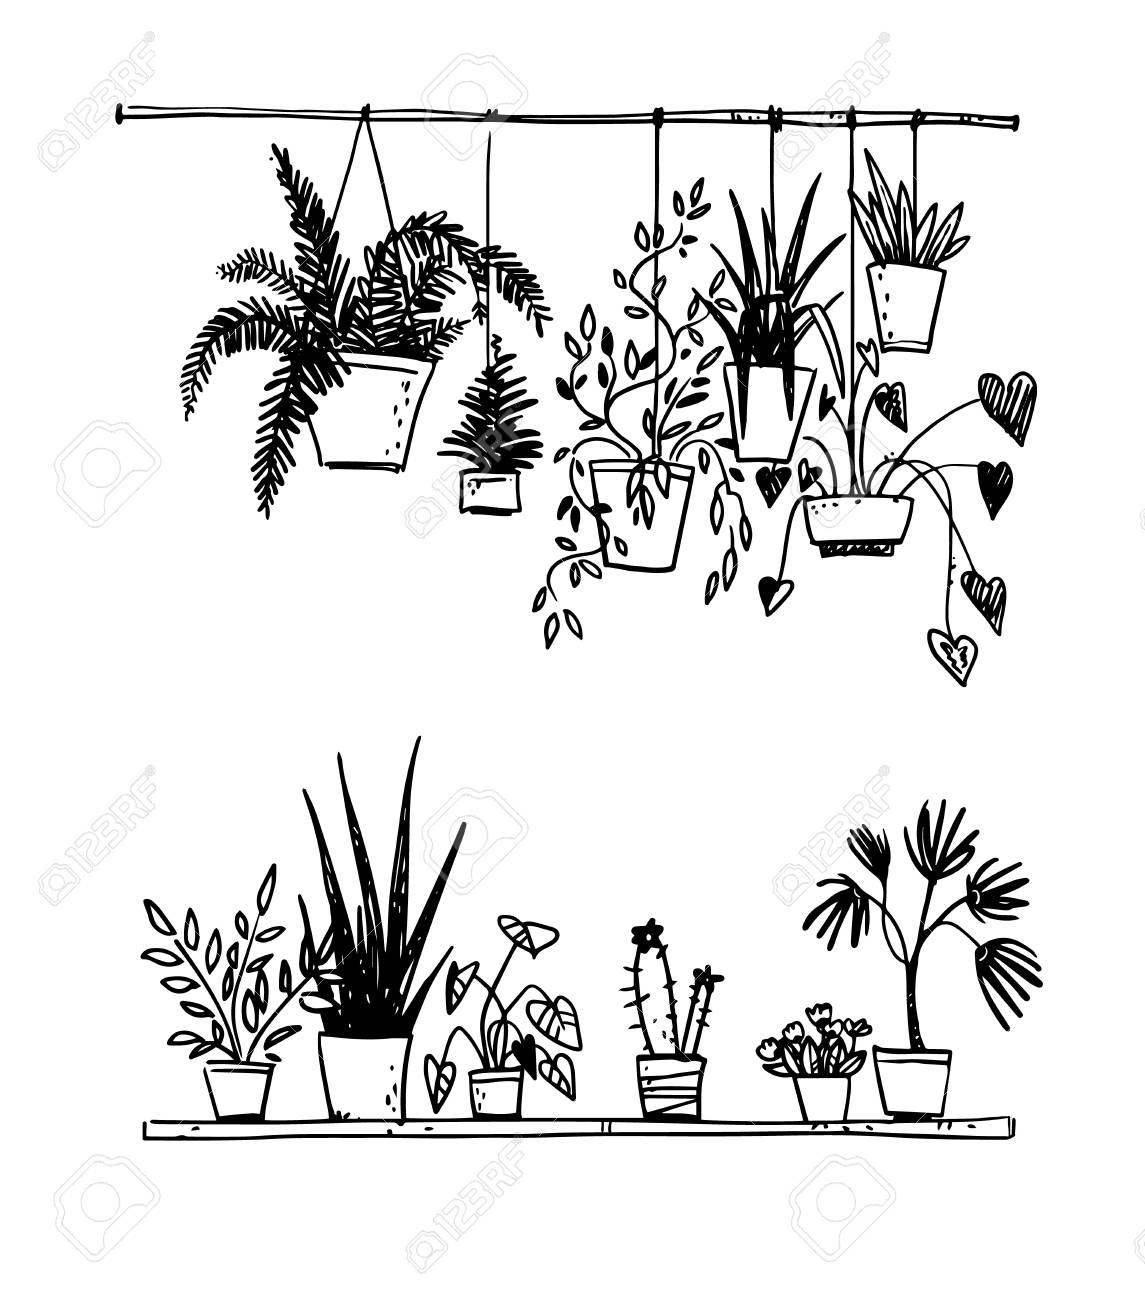 Set of potted house plants - 112651398